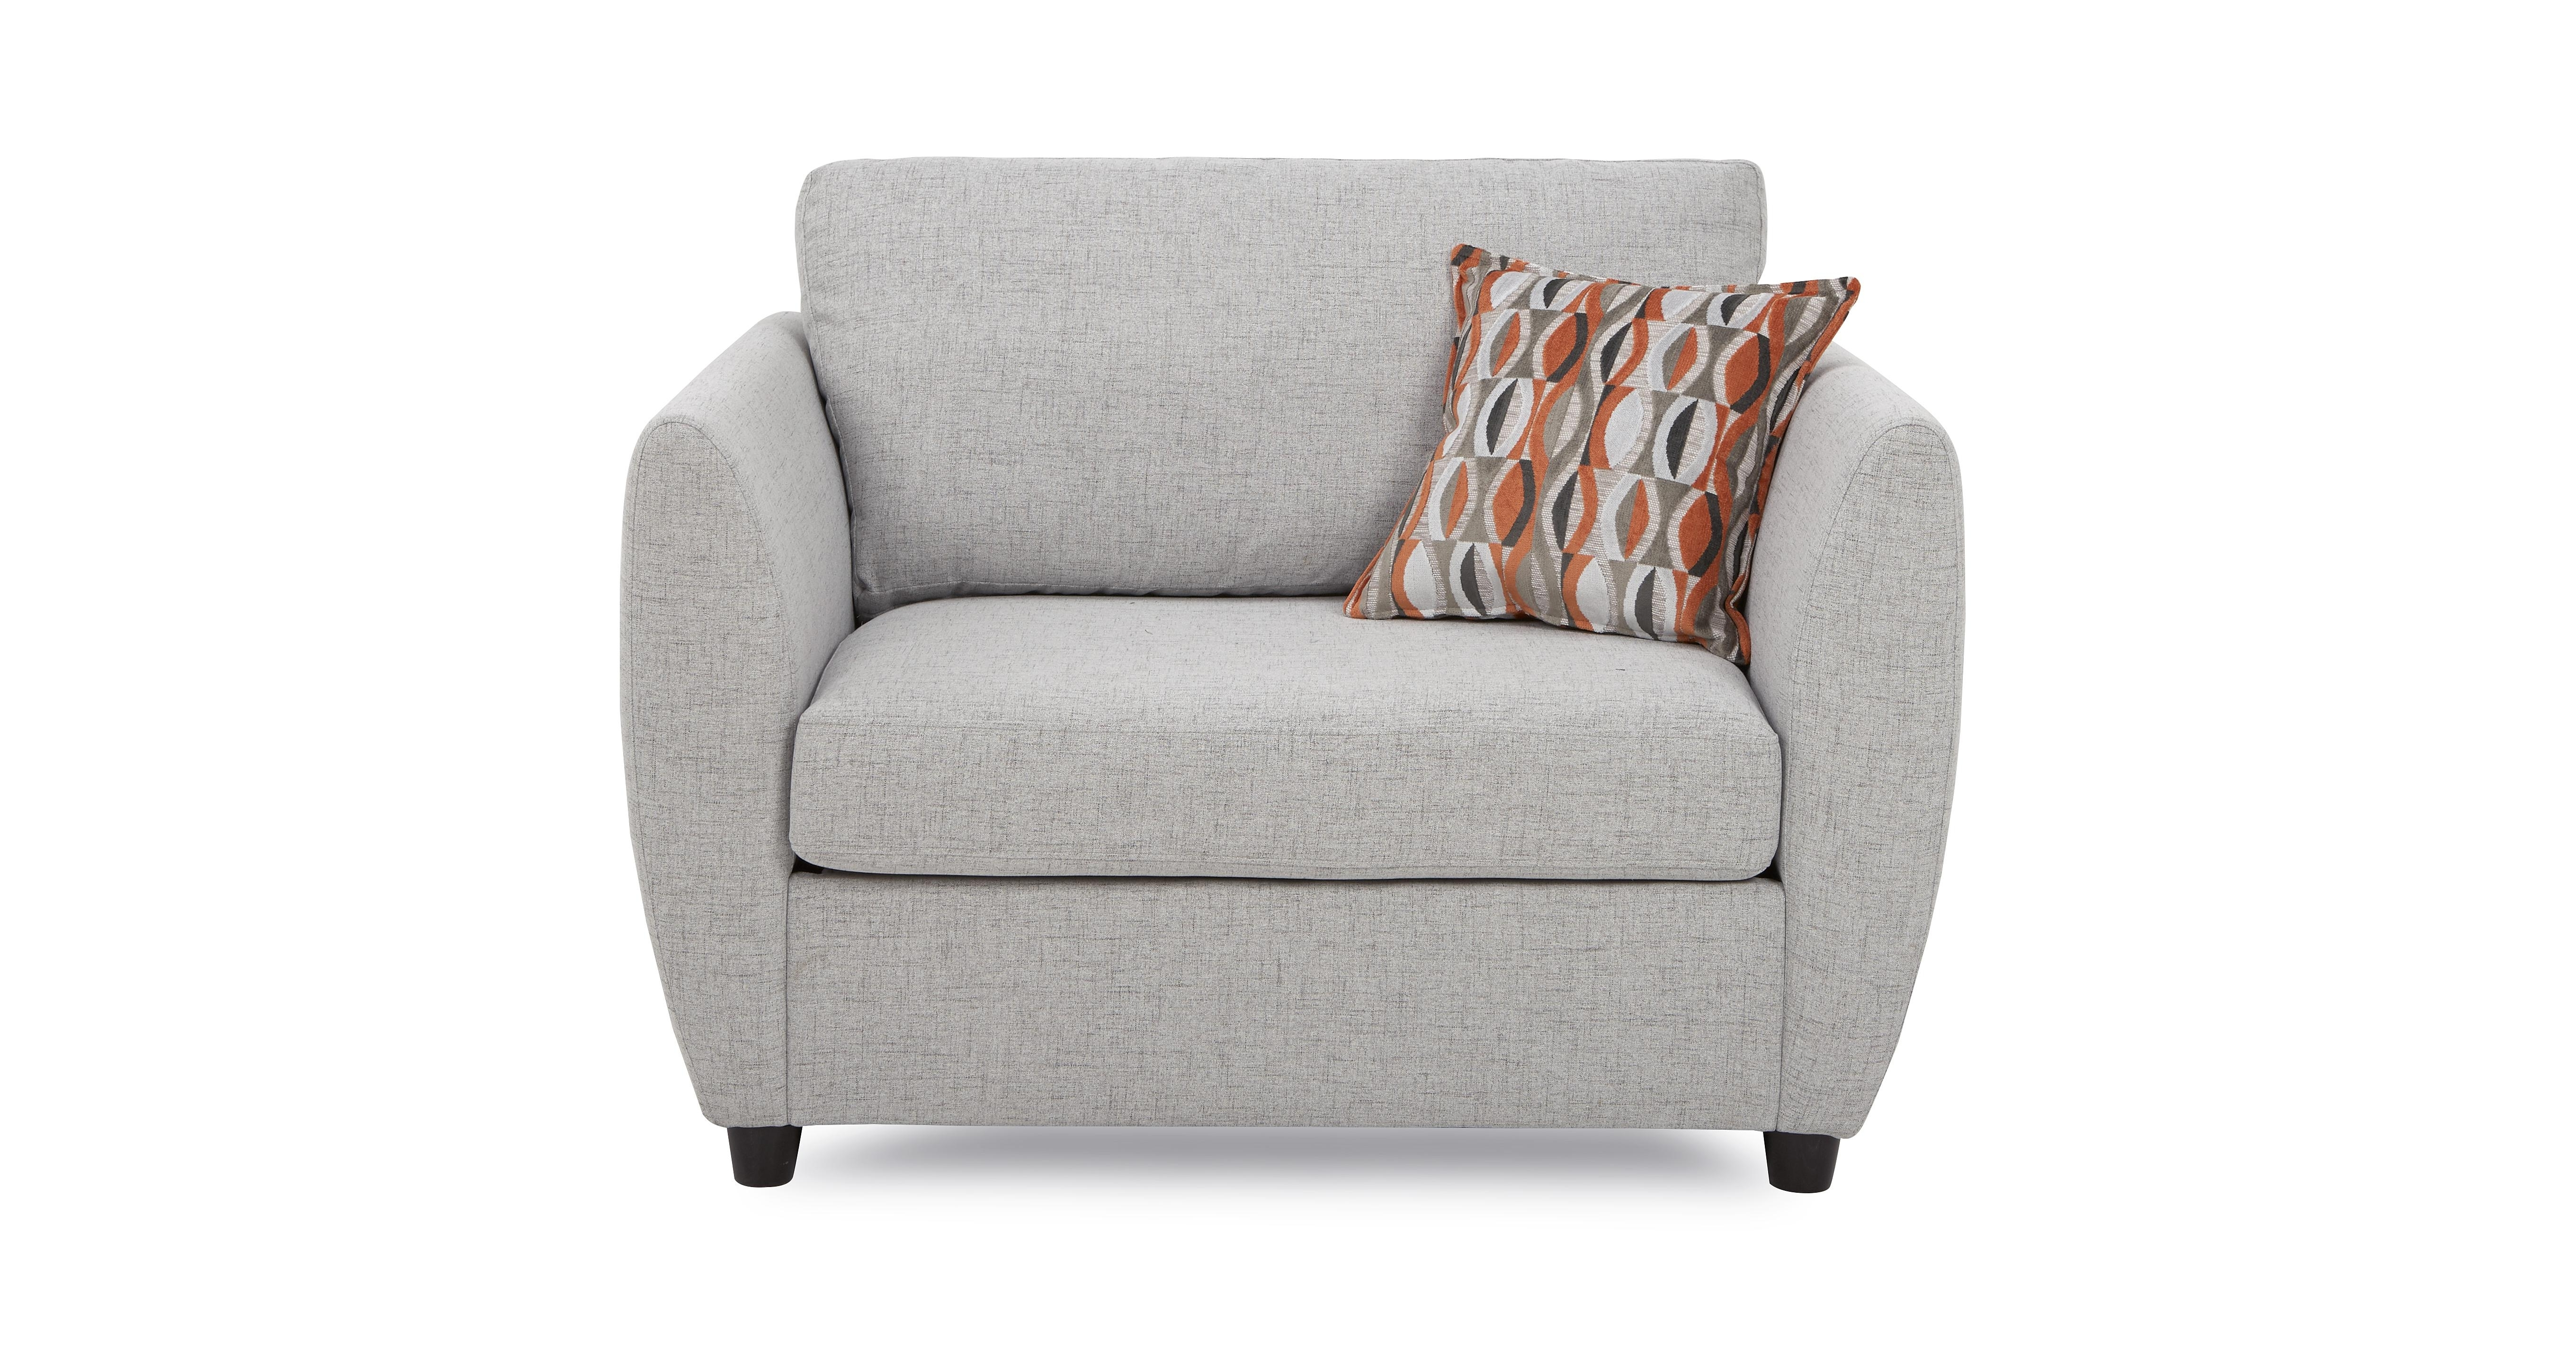 Well Known Sofa : Sofa And Chair Dimensions Sofa Chair Kijiji Edmonton Sofa For Bedroom Sofas And Chairs (View 20 of 20)